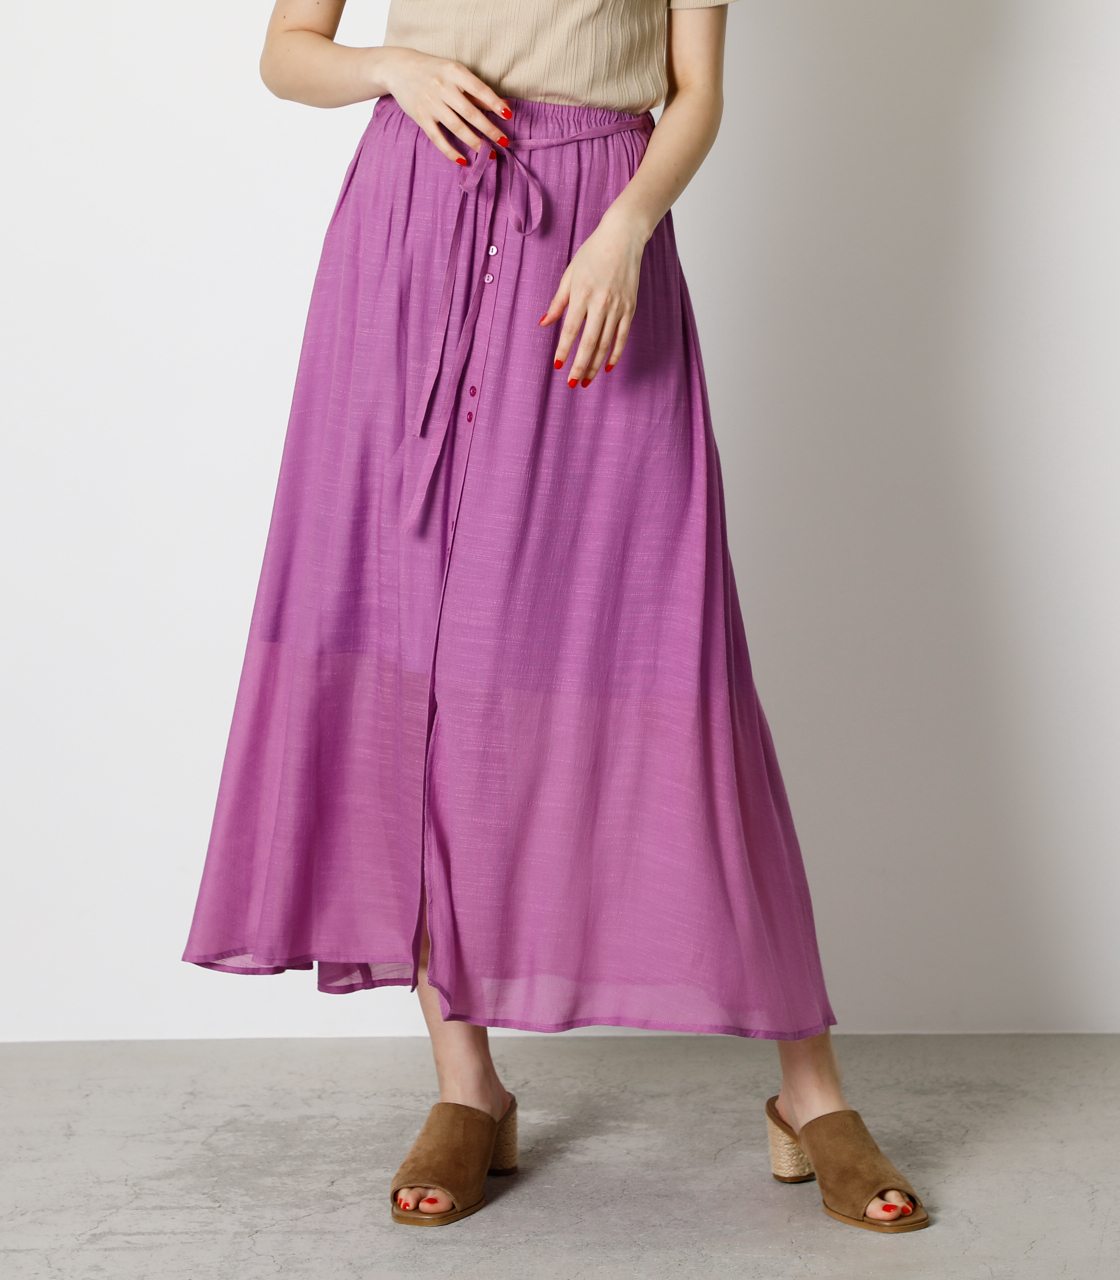 SHEER RELAX SKIRT/シアーリラックススカート 詳細画像 PUR 1